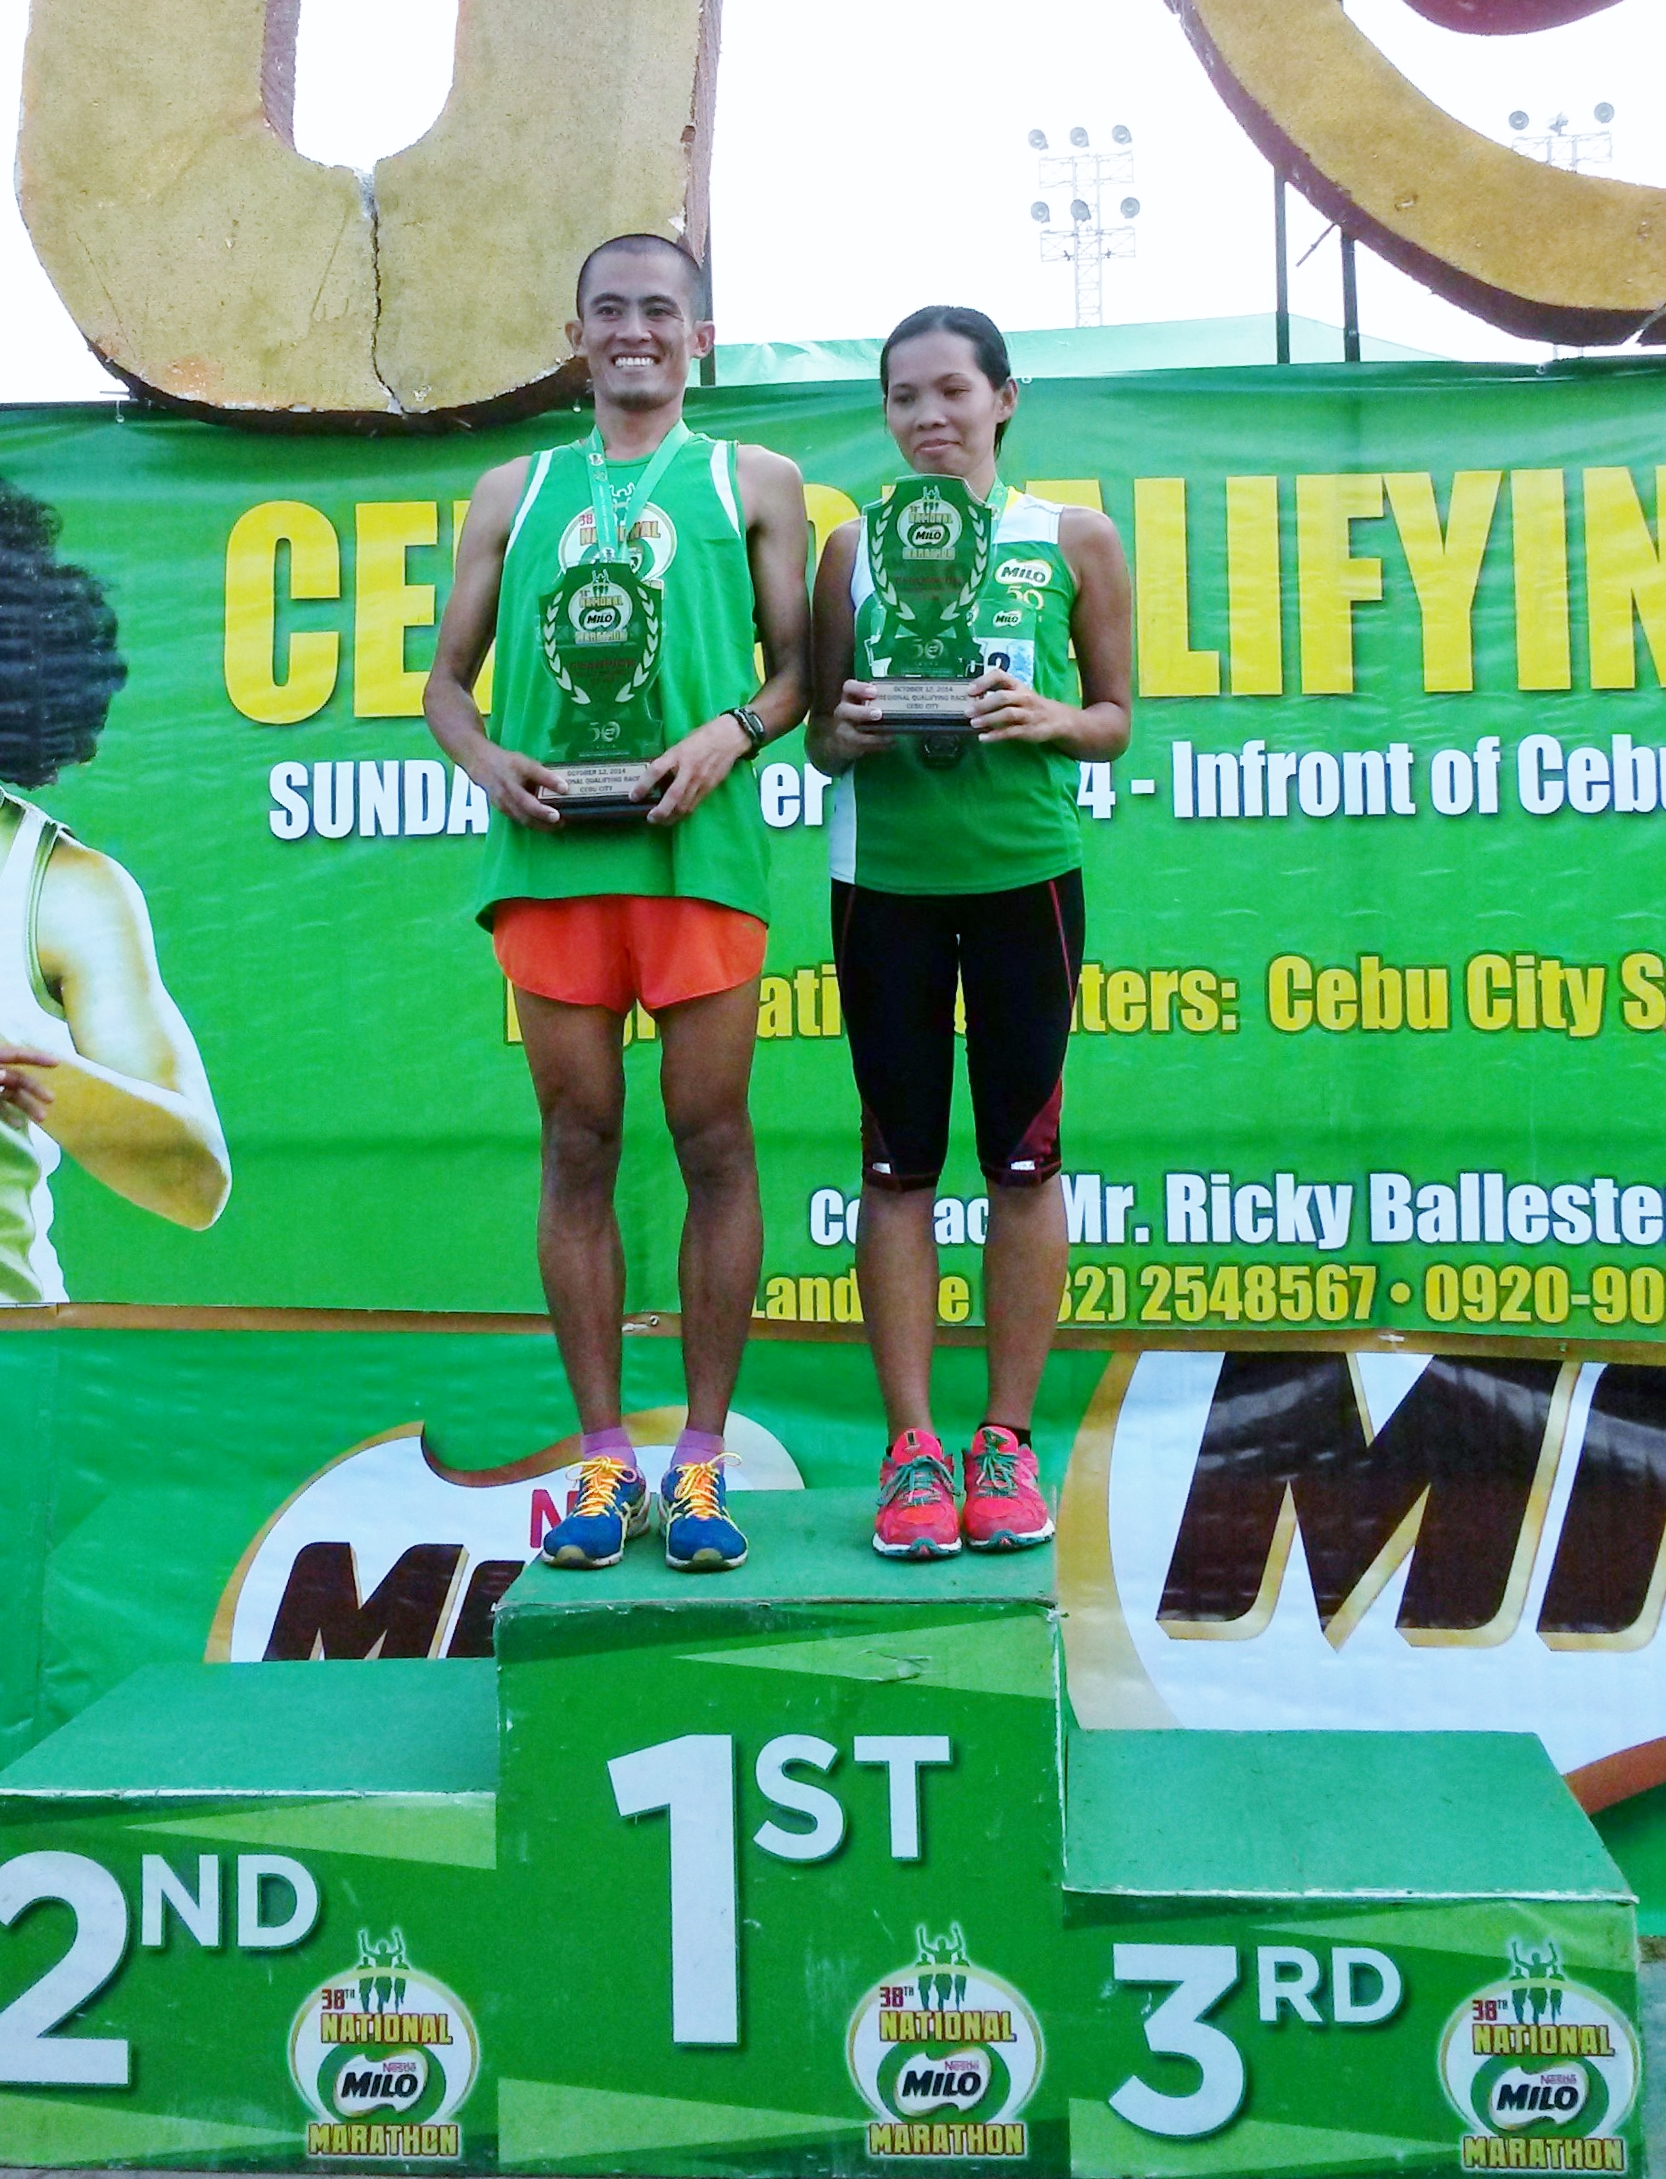 21K champions Noel Tillor and Roselyn Balongcas pose with their medals and trophies during the awarding ceremony of the 38th National Milo Marathon Cebu Elims at the Cebu City Sports Center.